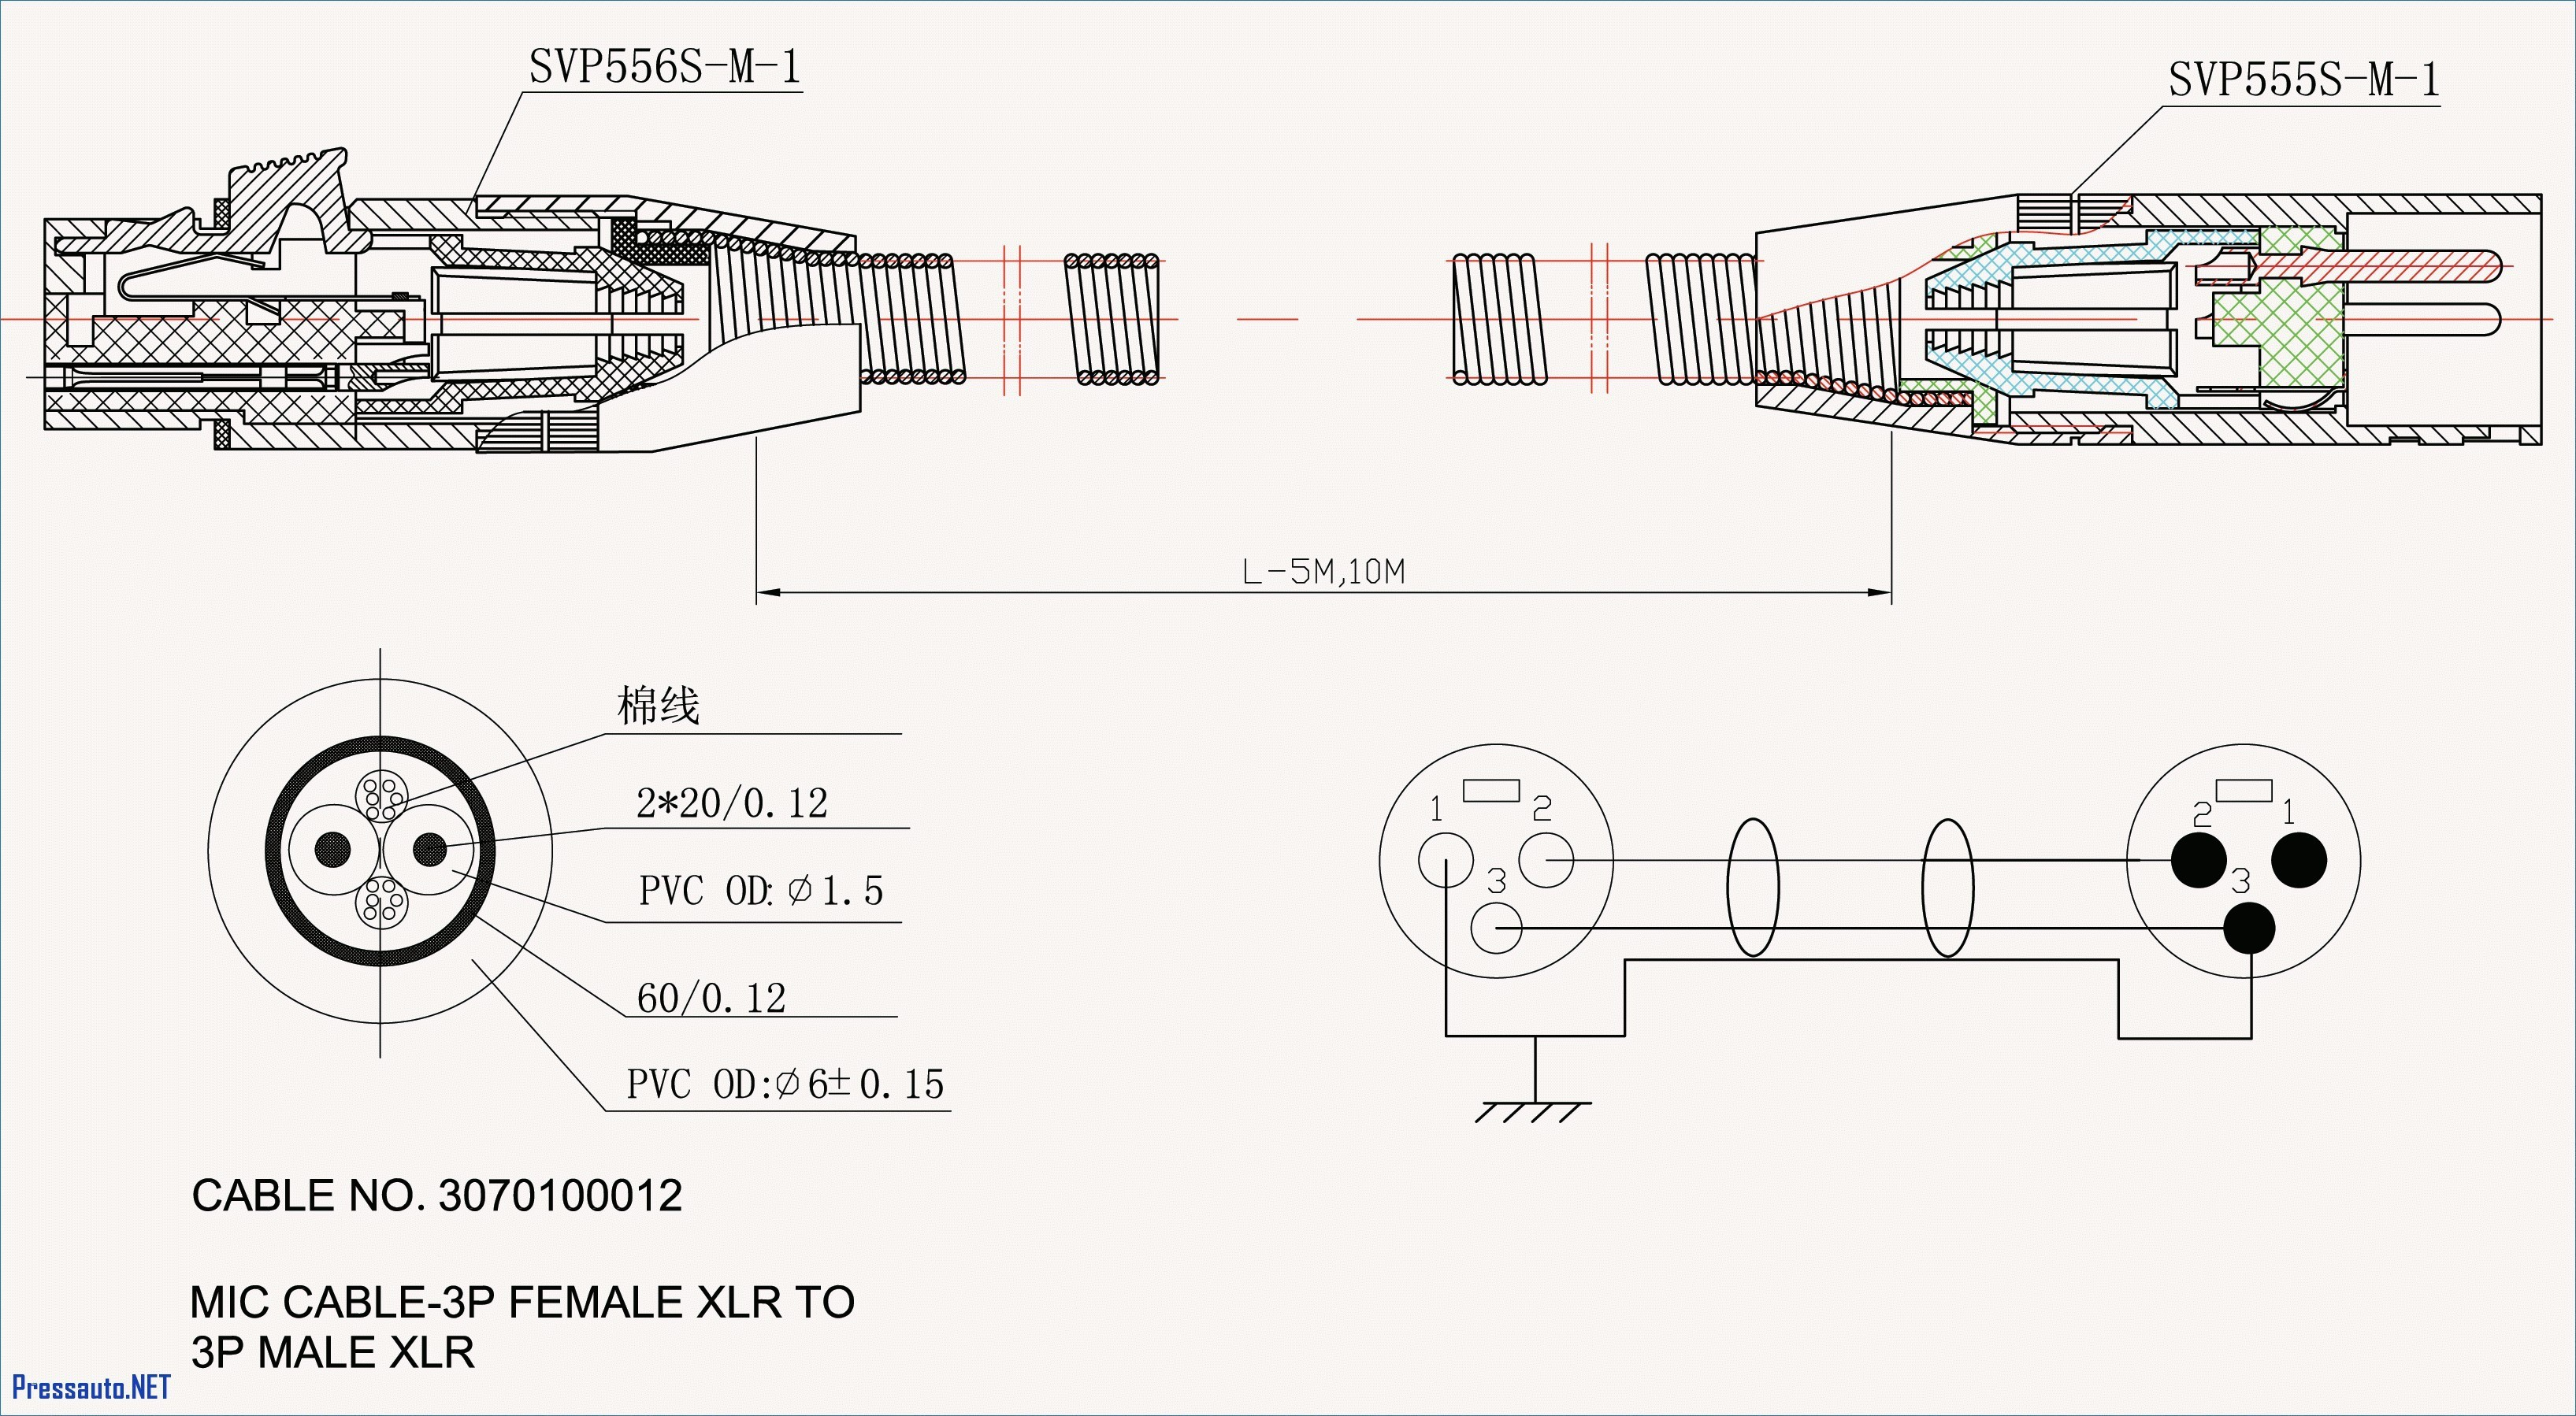 Ford F150 Parts Diagram 2001 ford F150 Parts Diagram Simple Wiring Diagram Of Ford F150 Parts Diagram